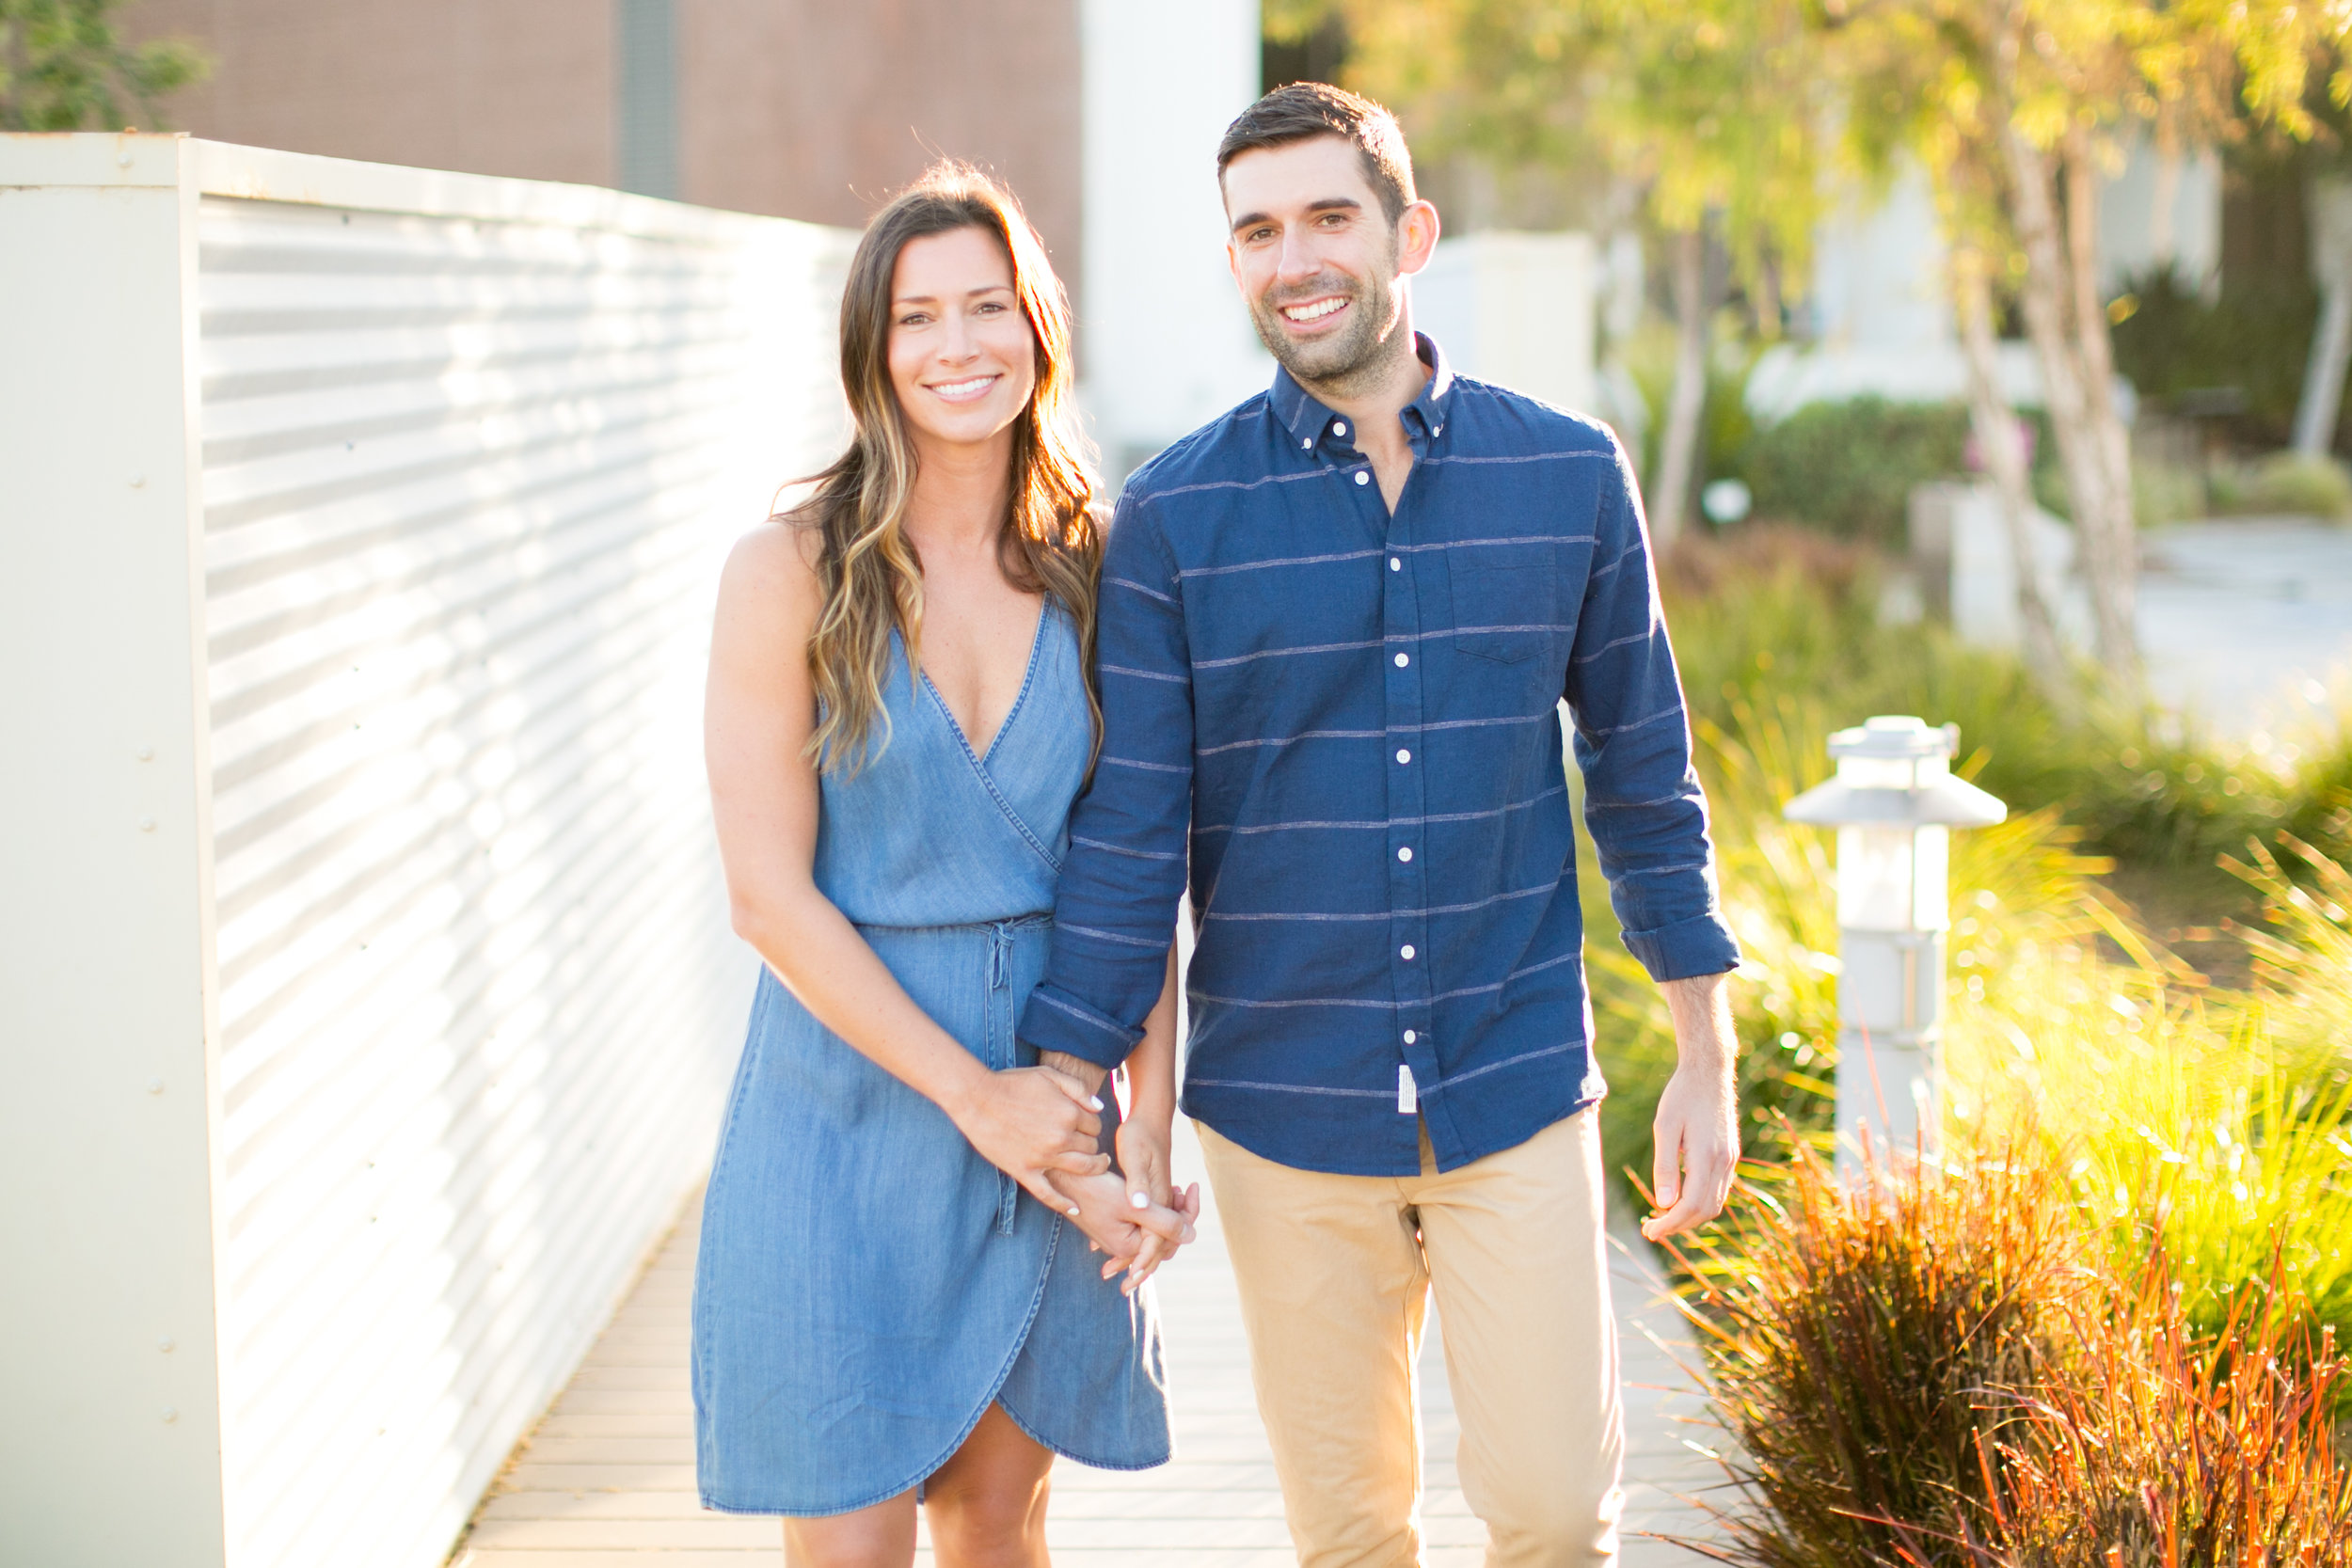 "<a href=""/connorjamie""><span style=""color:white;"">Connor & Jamie</span> →<strong>Engagement Session <br></strong></a>"